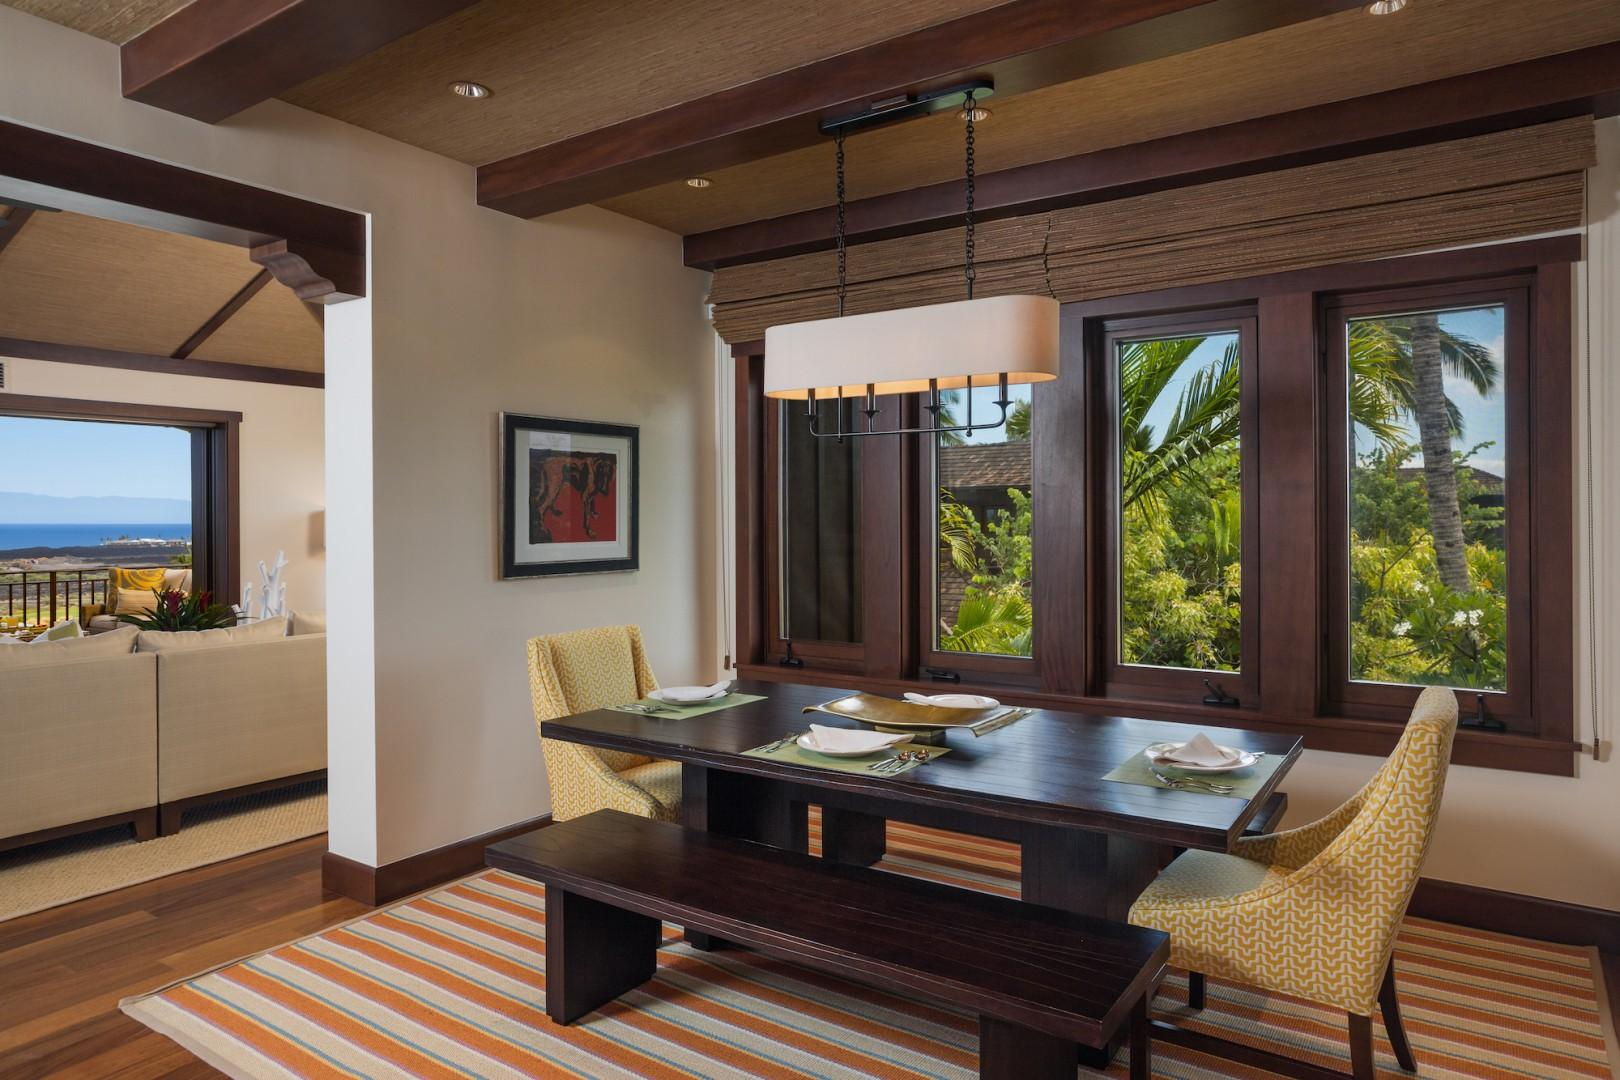 Formal dining room with seating for 6, adjacent to the kitchen and great room.